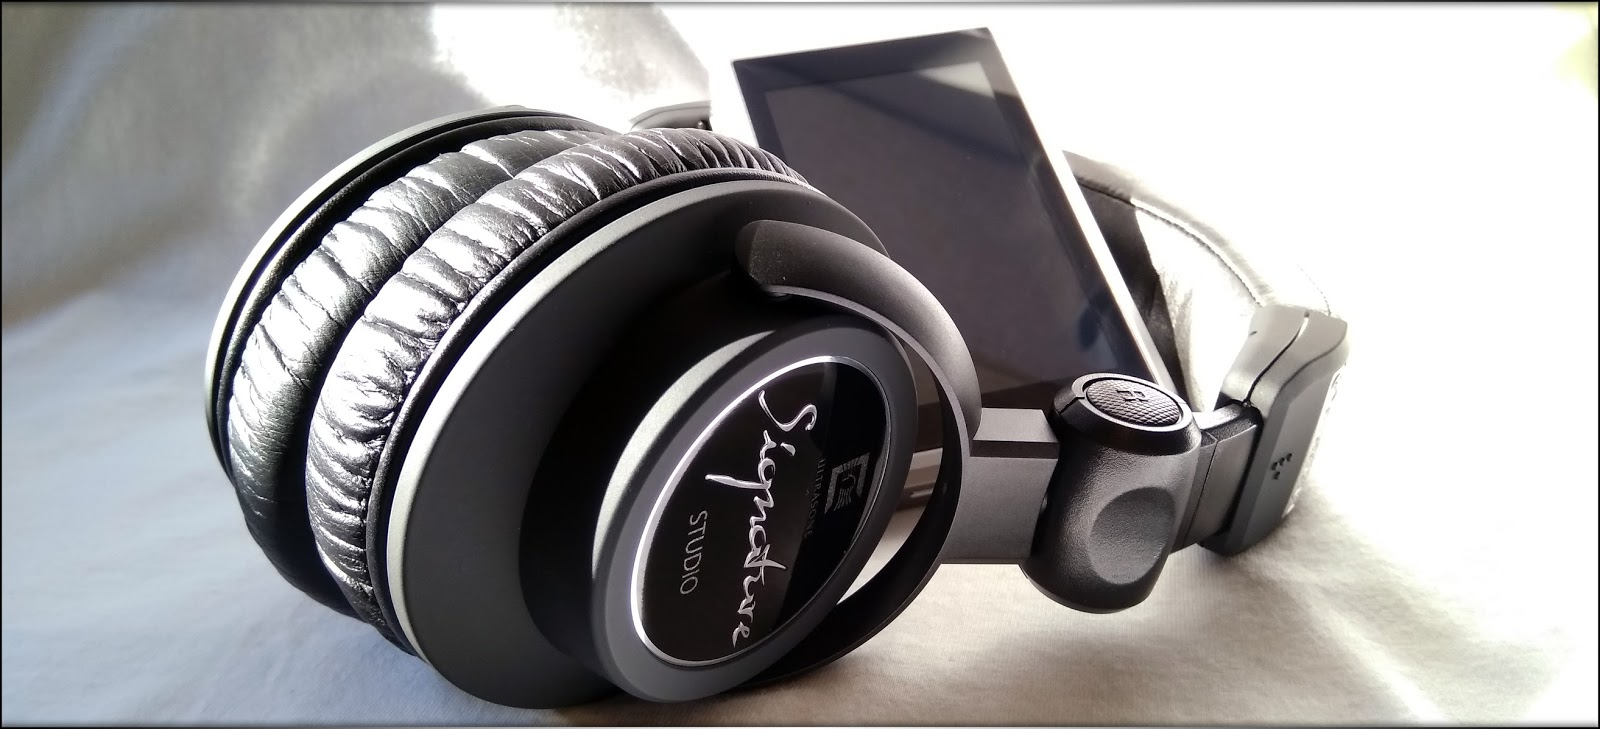 787bda8b3e The treble of Signature Studio is energetic, alive, passionate and full of  life, the headphone that has the closest treble in my experience being  probably ...